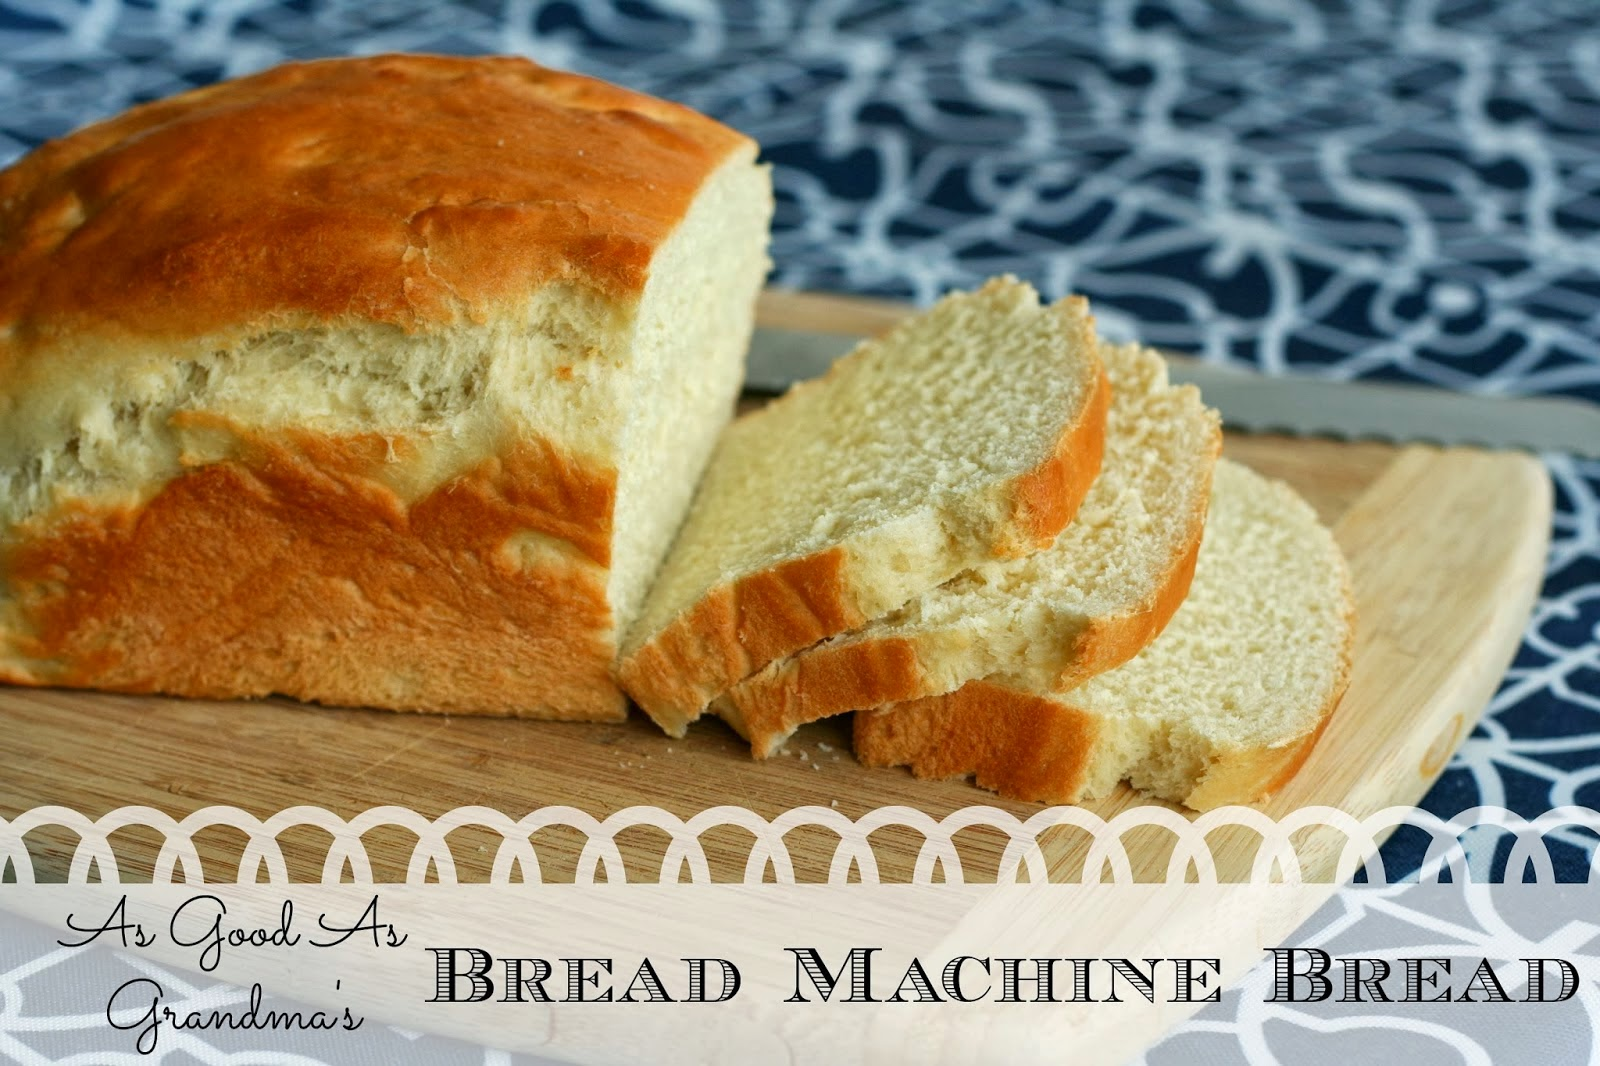 grandma's bread recipe